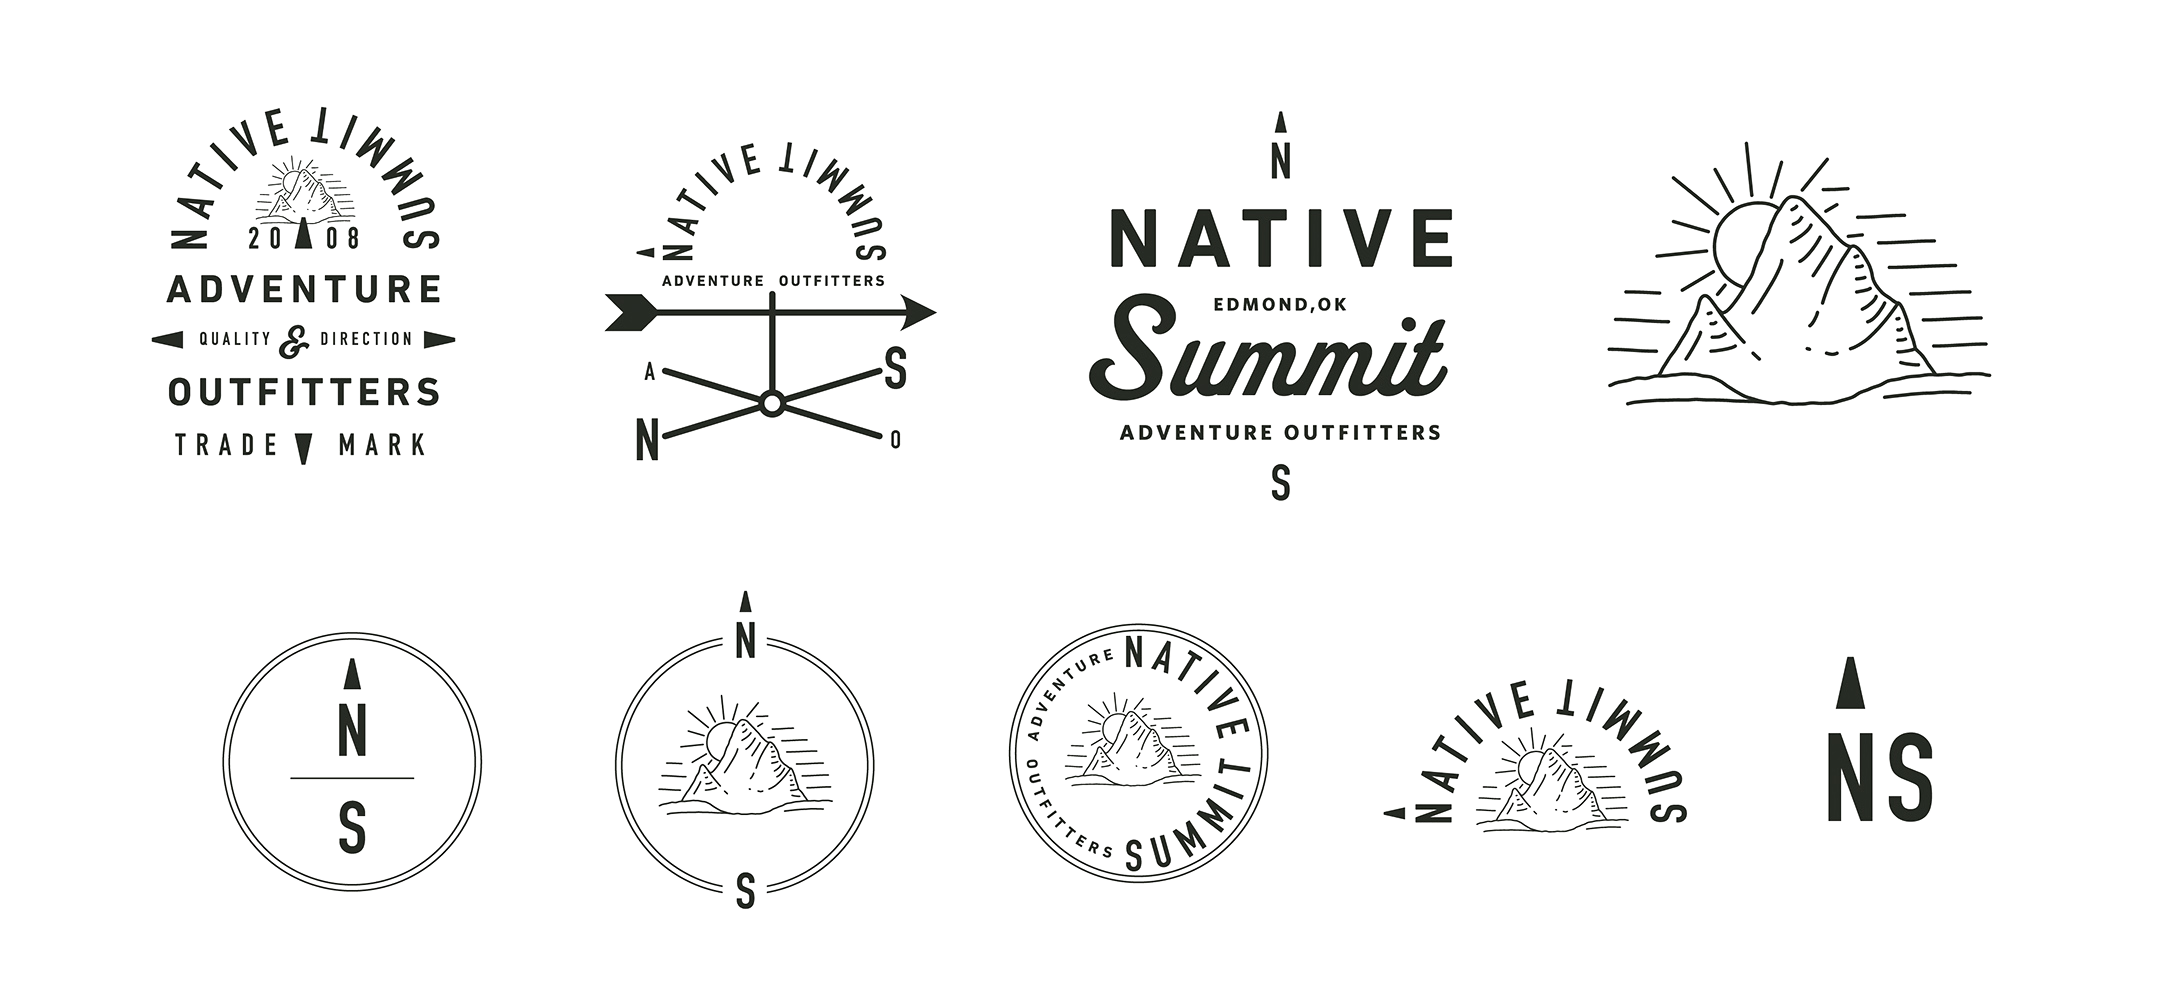 Different Badges for Native Summit